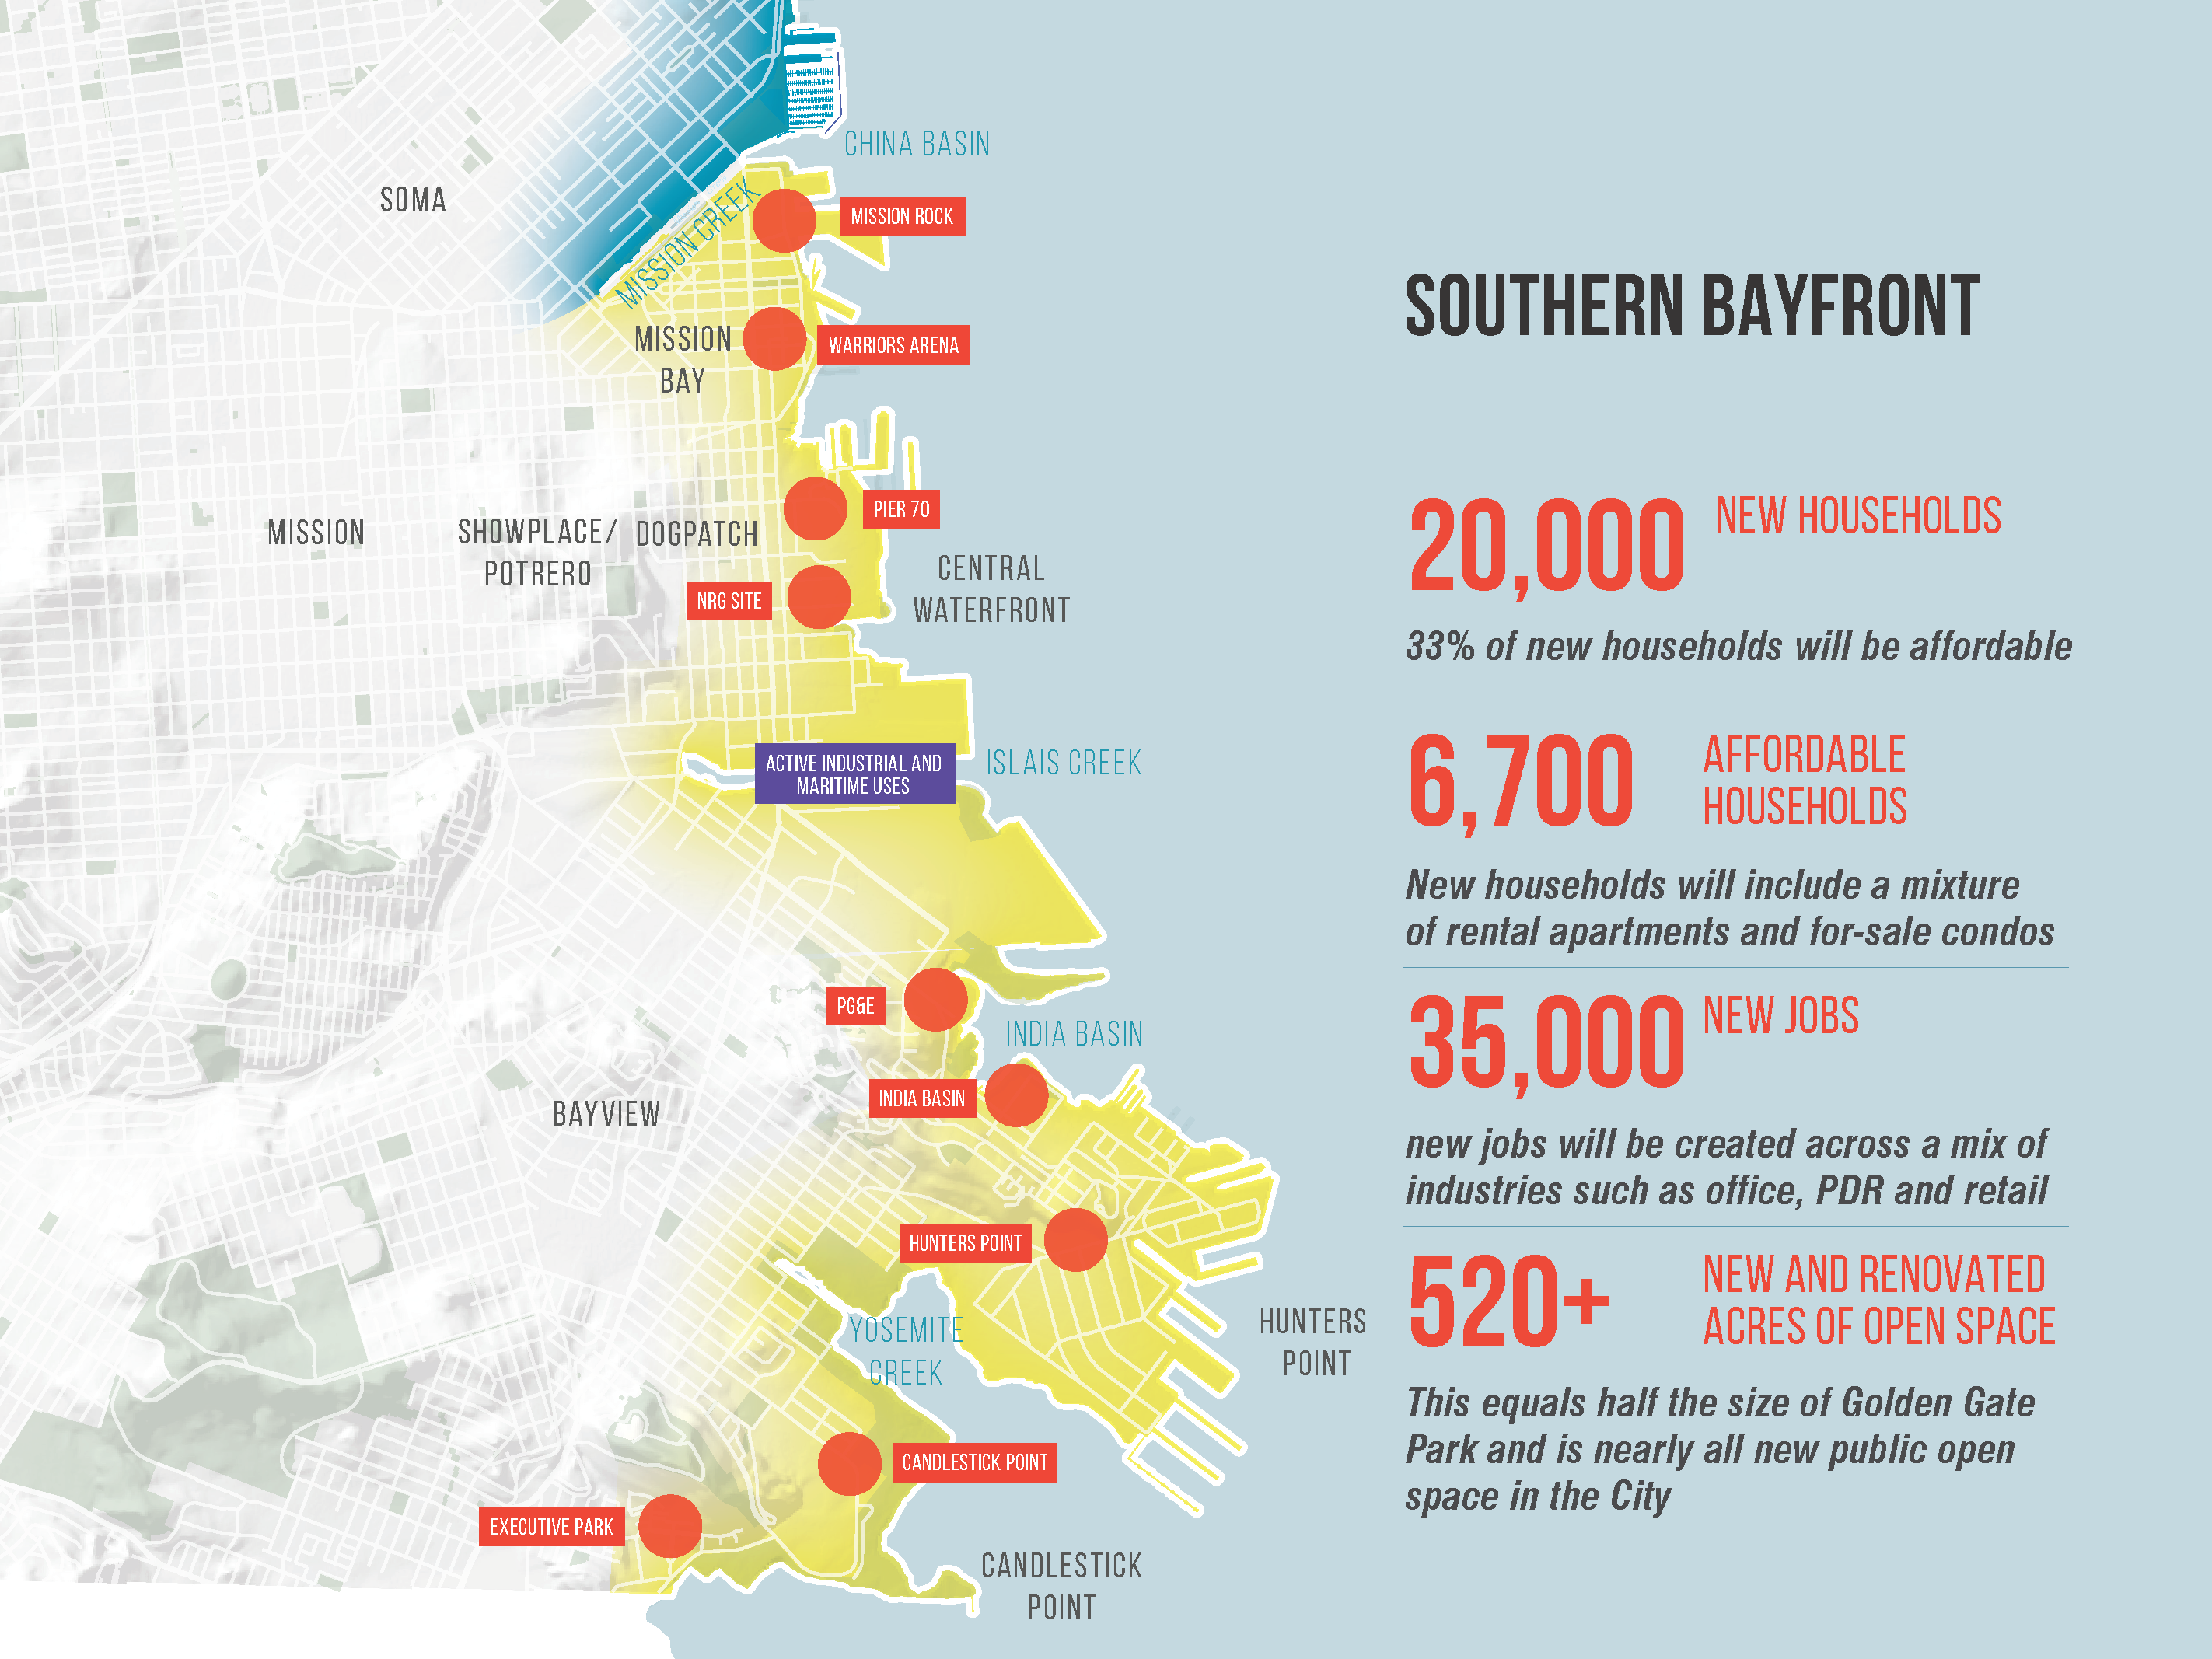 Pier 70 San Francisco Map.Southern Bayfront Office Of Economic And Workforce Development